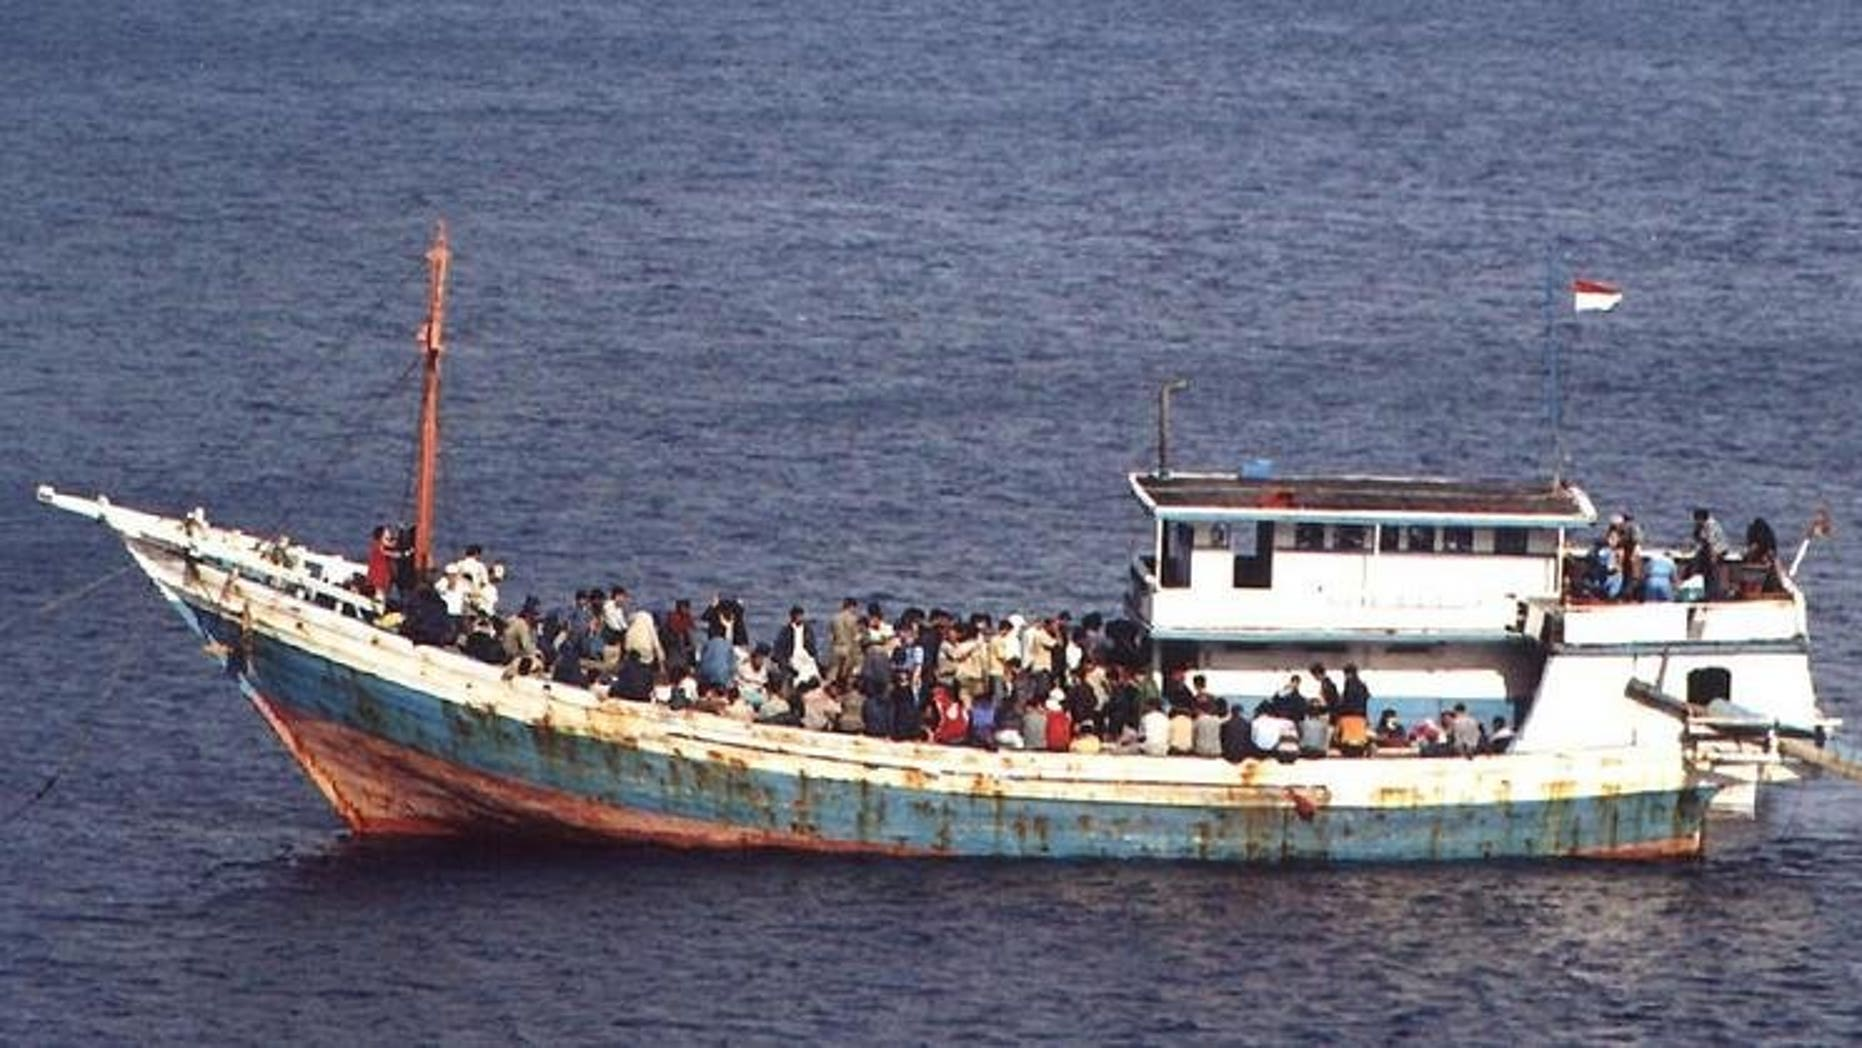 A boat carrying asylum seekers is intercepted by the Austalian navy on October 20, 2001. A boat carrying some 150 asylum-seekers capsized off Christmas Island Tuesday but the Australian navy saved most of them, rescuers said.